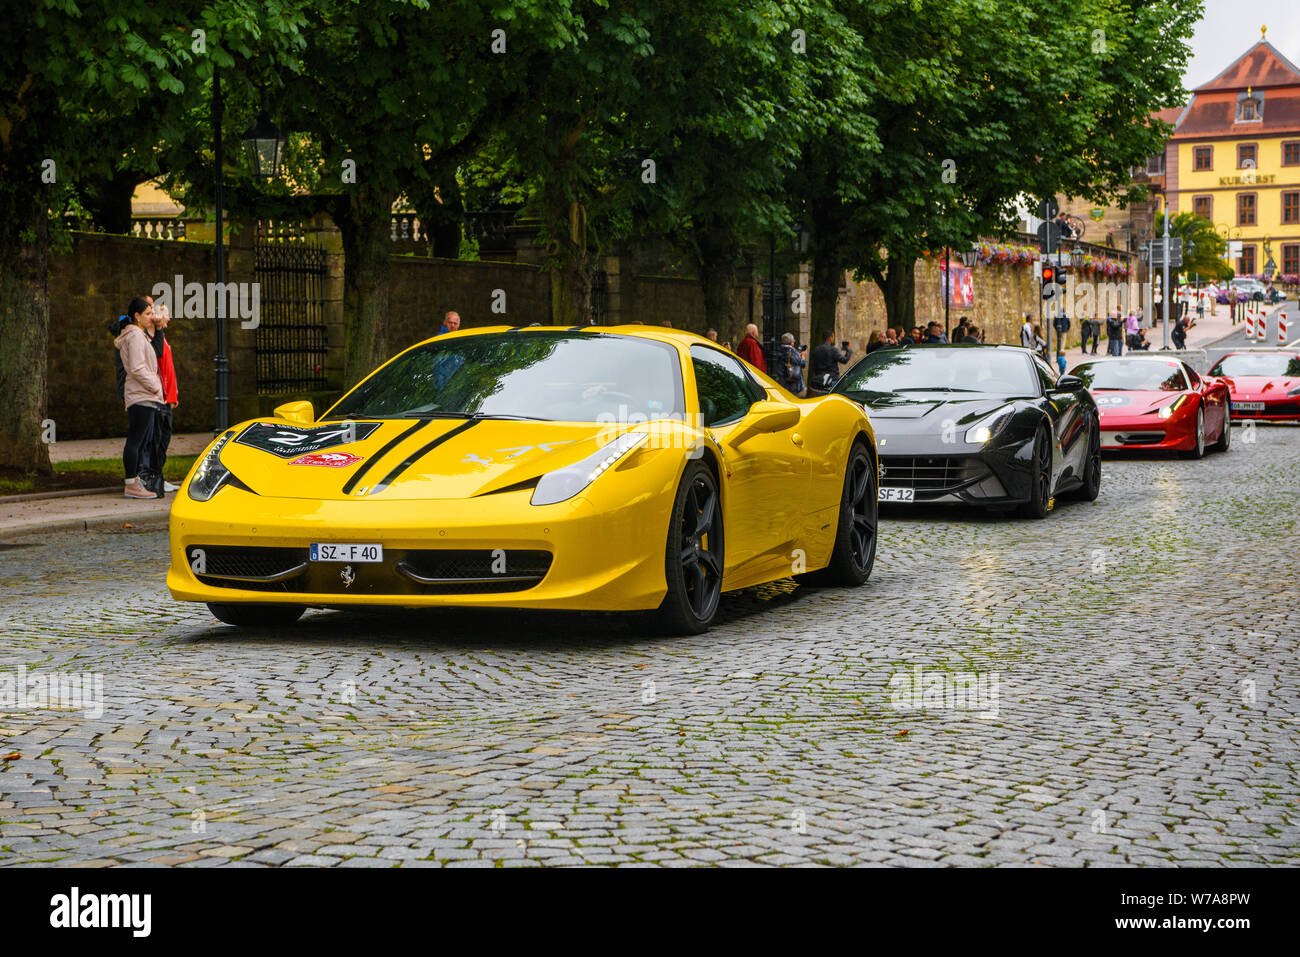 Germany Fulda Jul 2019 Yellow Ferrari 458 Spider Coupe Was Introduced At The 2011 Frankfurt Motor Show This Convertible Variant Of The 458 Italia Stock Photo Alamy